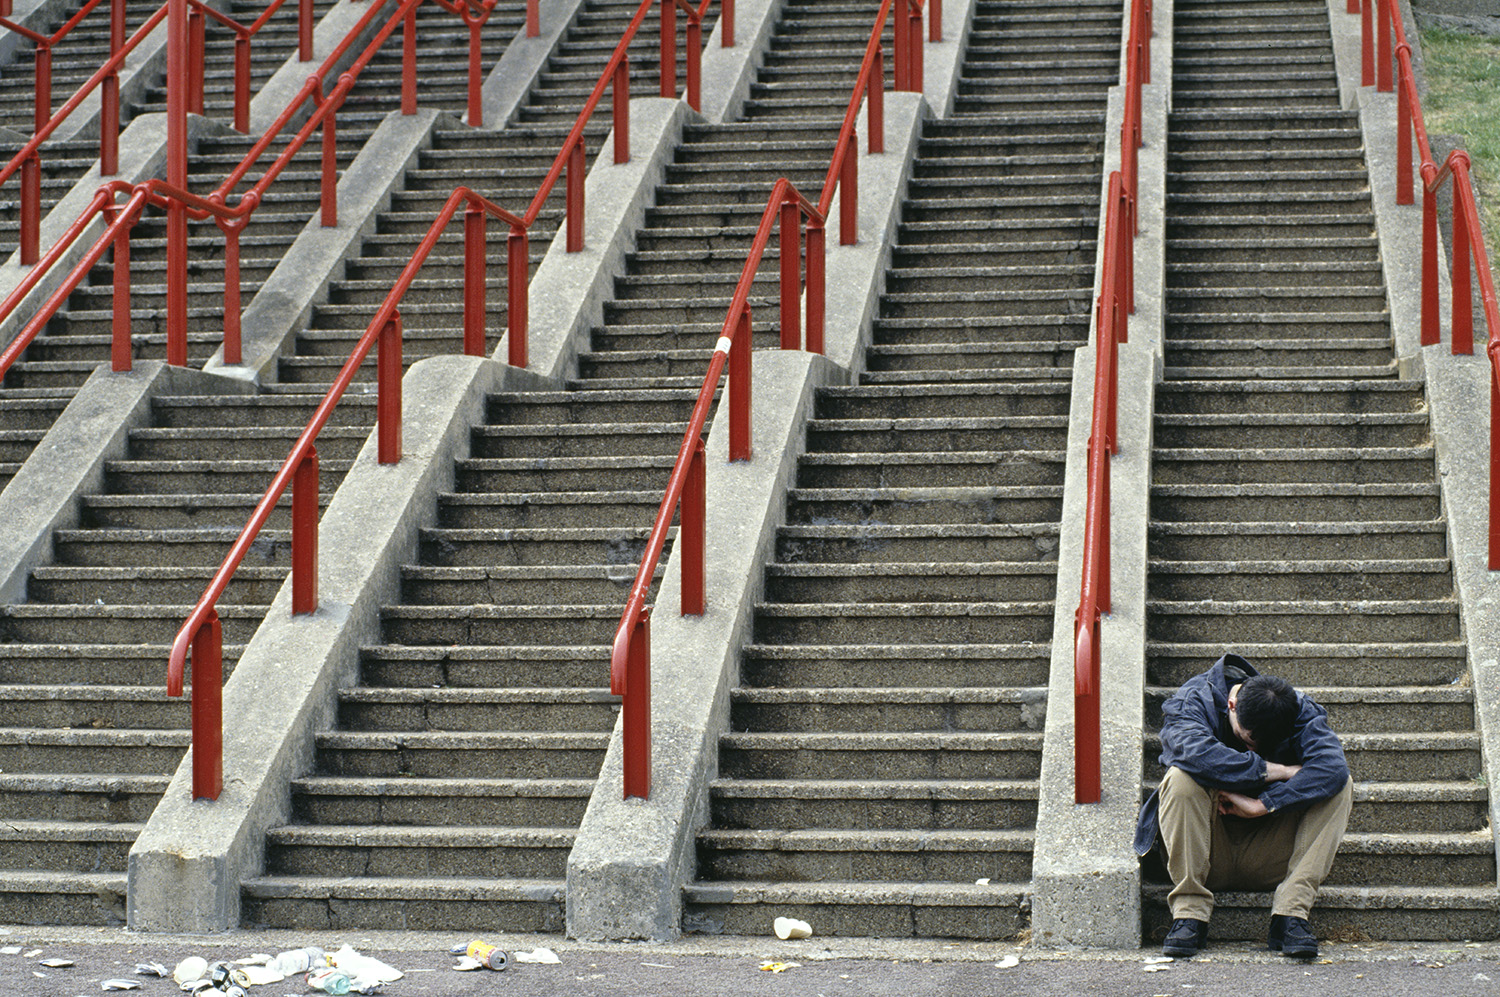 A ticketless fan reacts on the steps outside Wembley Stadium during the 1995 FA cup Final between Everton and Manchester United in London on May 20, 1995.